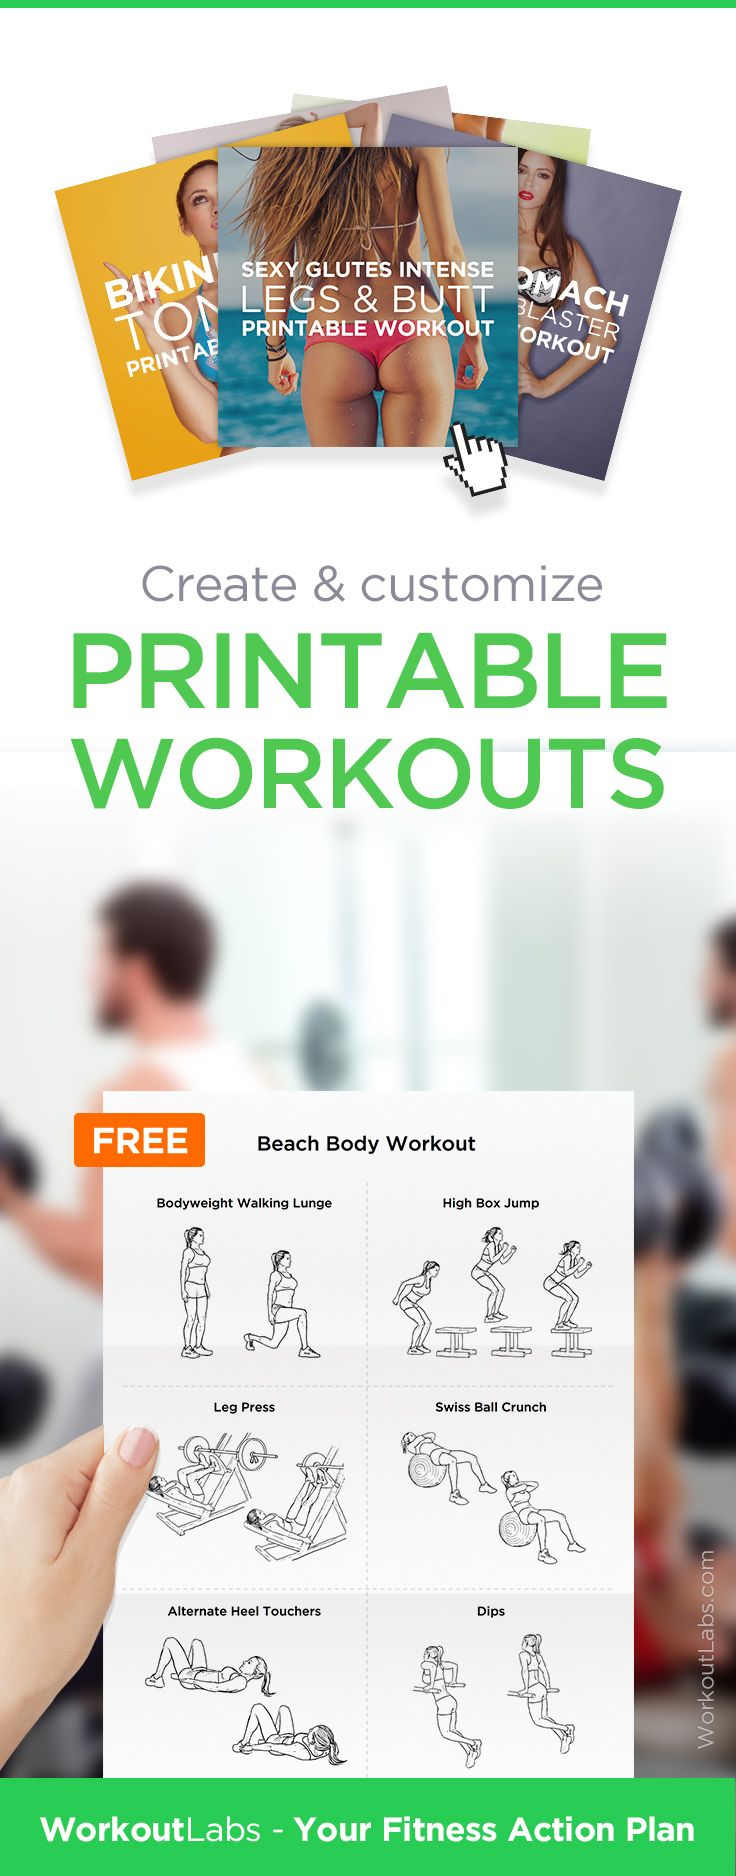 Create and customize printable workout plans with exercise illustrations, FREE